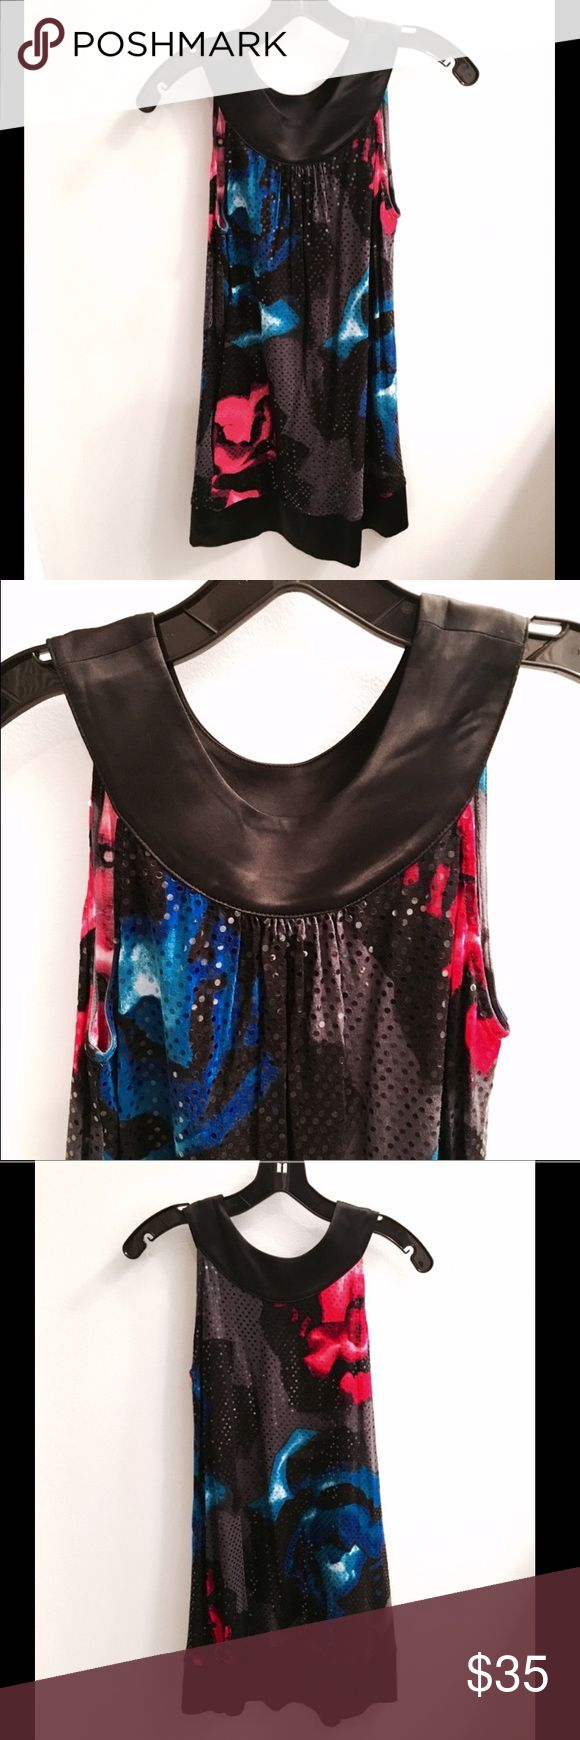 Express Rose Mini Dress Express - only worn once! Fun black mini dress with bright pink and bright blue roses. Fabric has sparkly effect with sequin-type embellishments. Black satin bib collar. Baby doll style dress. Adorable and so cute for party or fun date night! Size XS. Express Dresses Mini